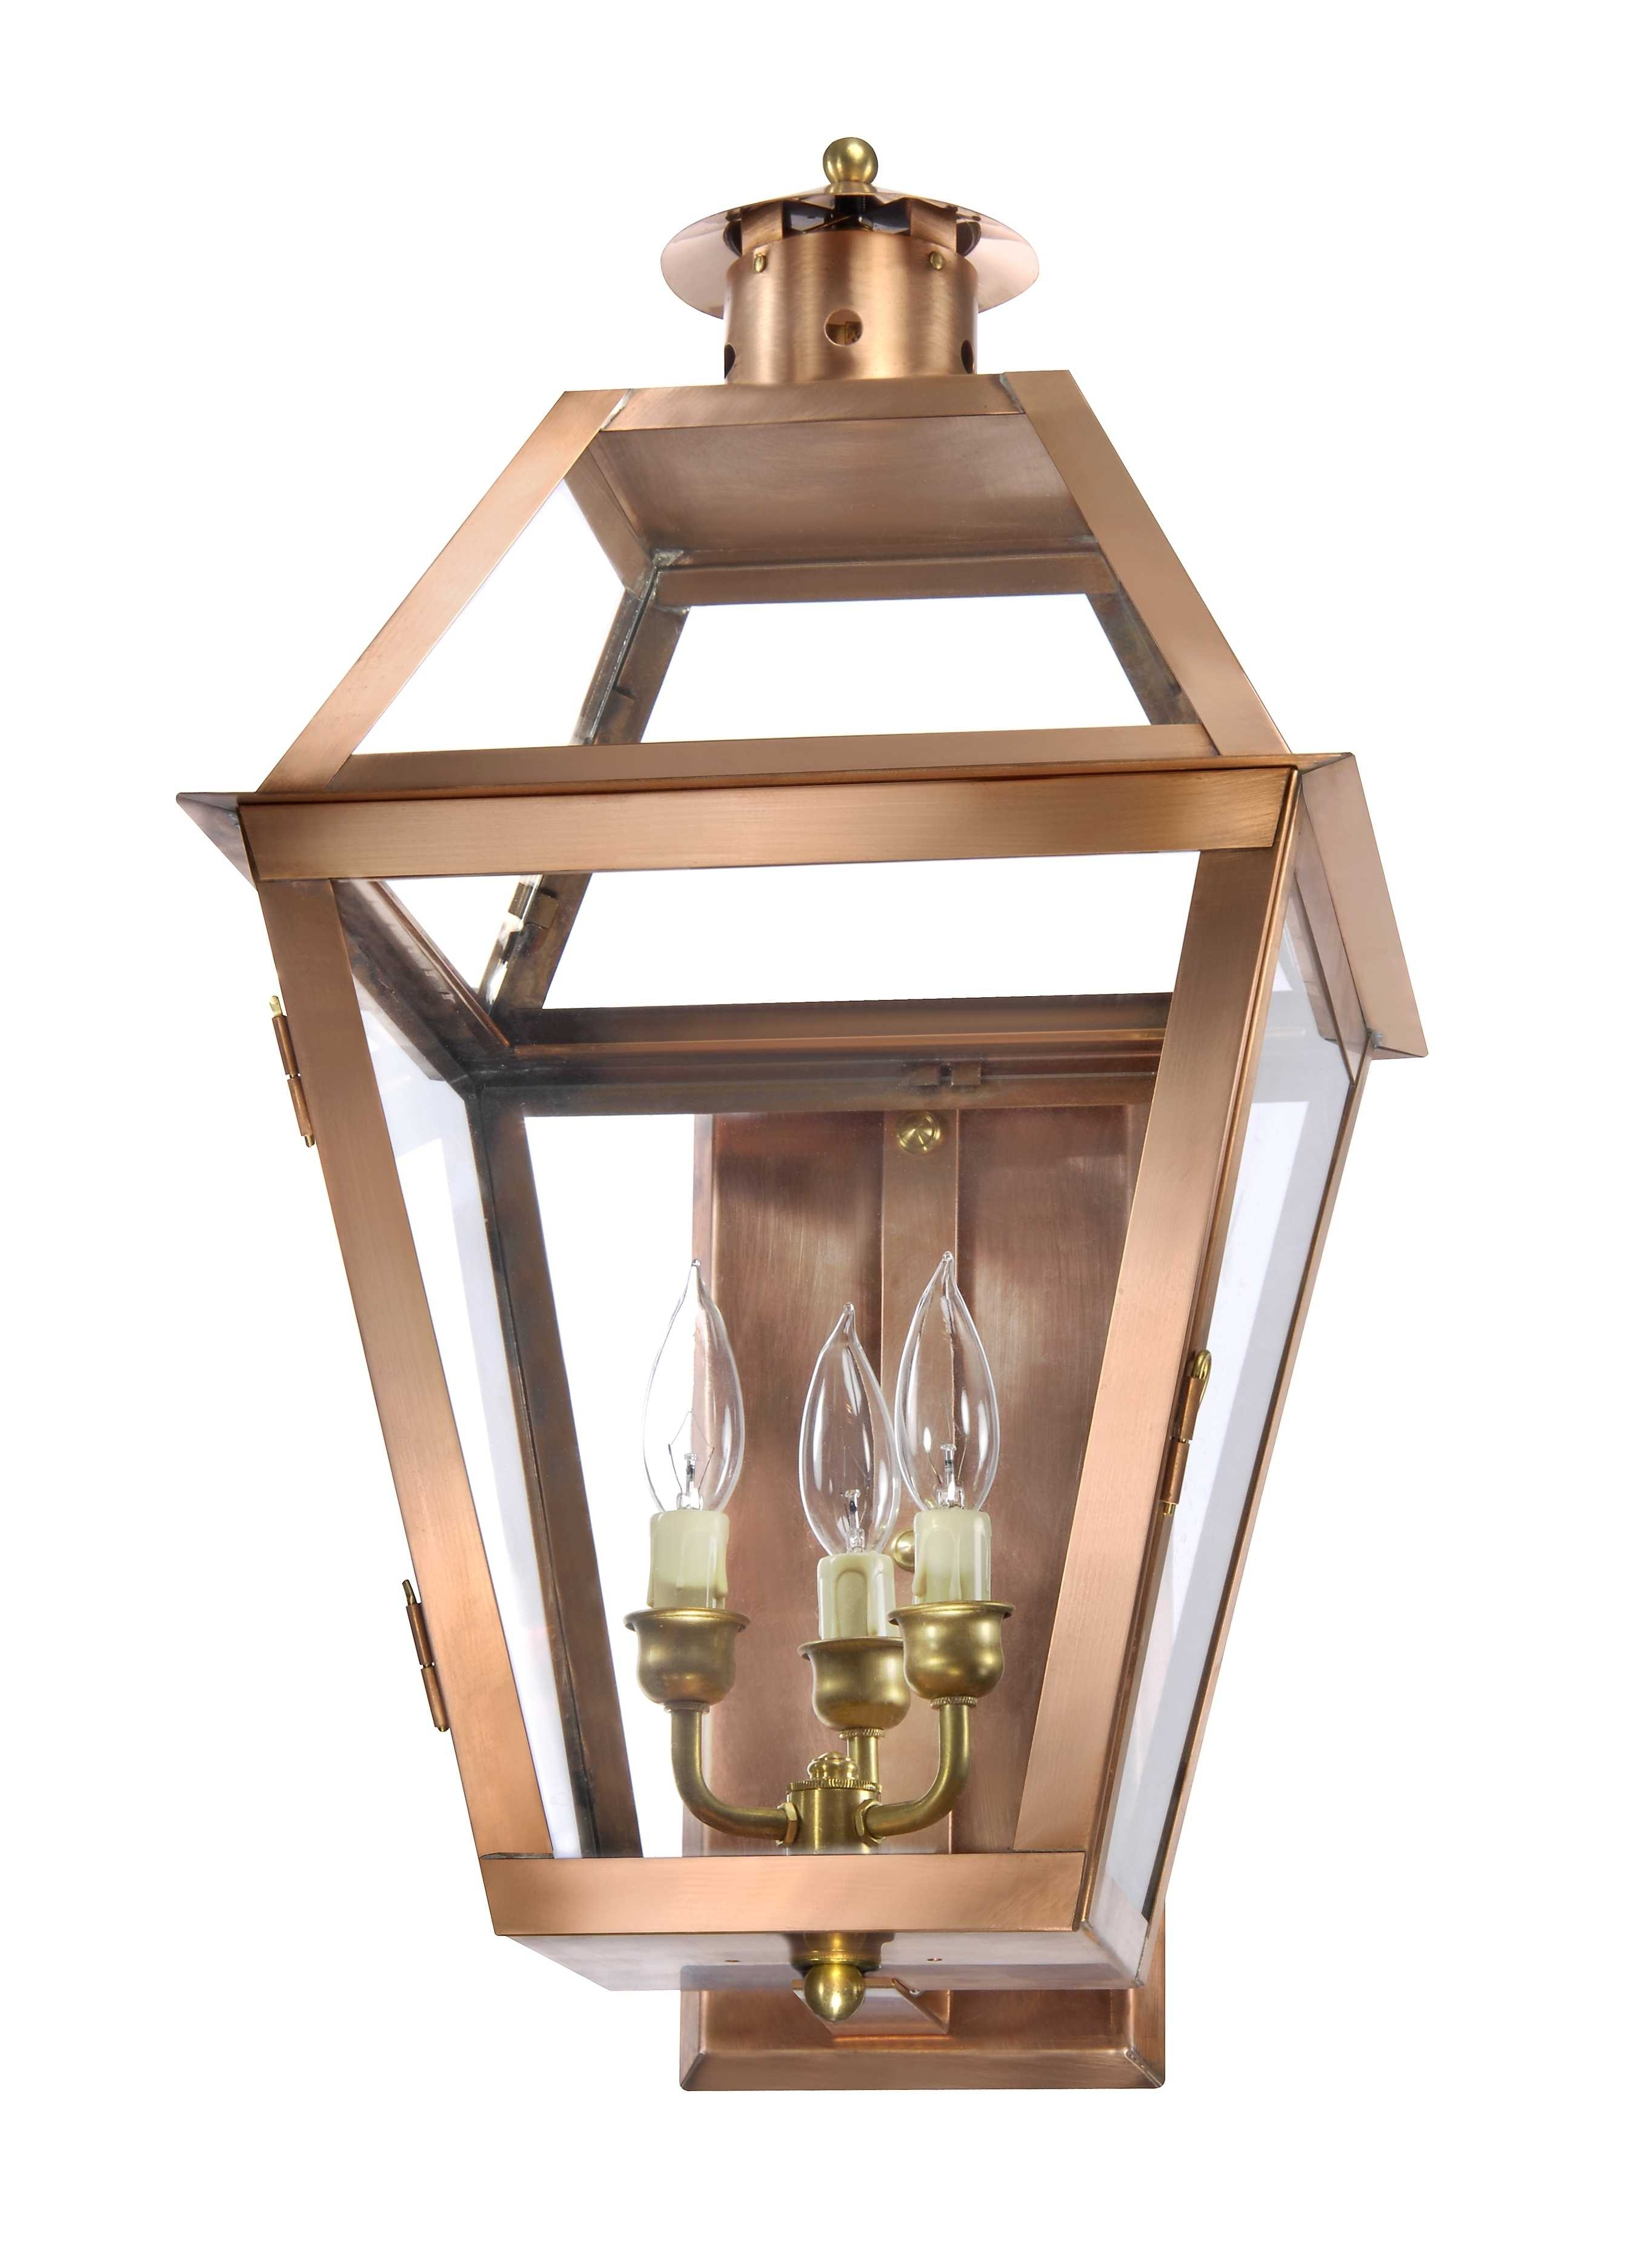 Outdoor Lanterns | Copper Exterior Lighting - Lantern & Scroll within Copper Outdoor Lanterns (Image 13 of 20)